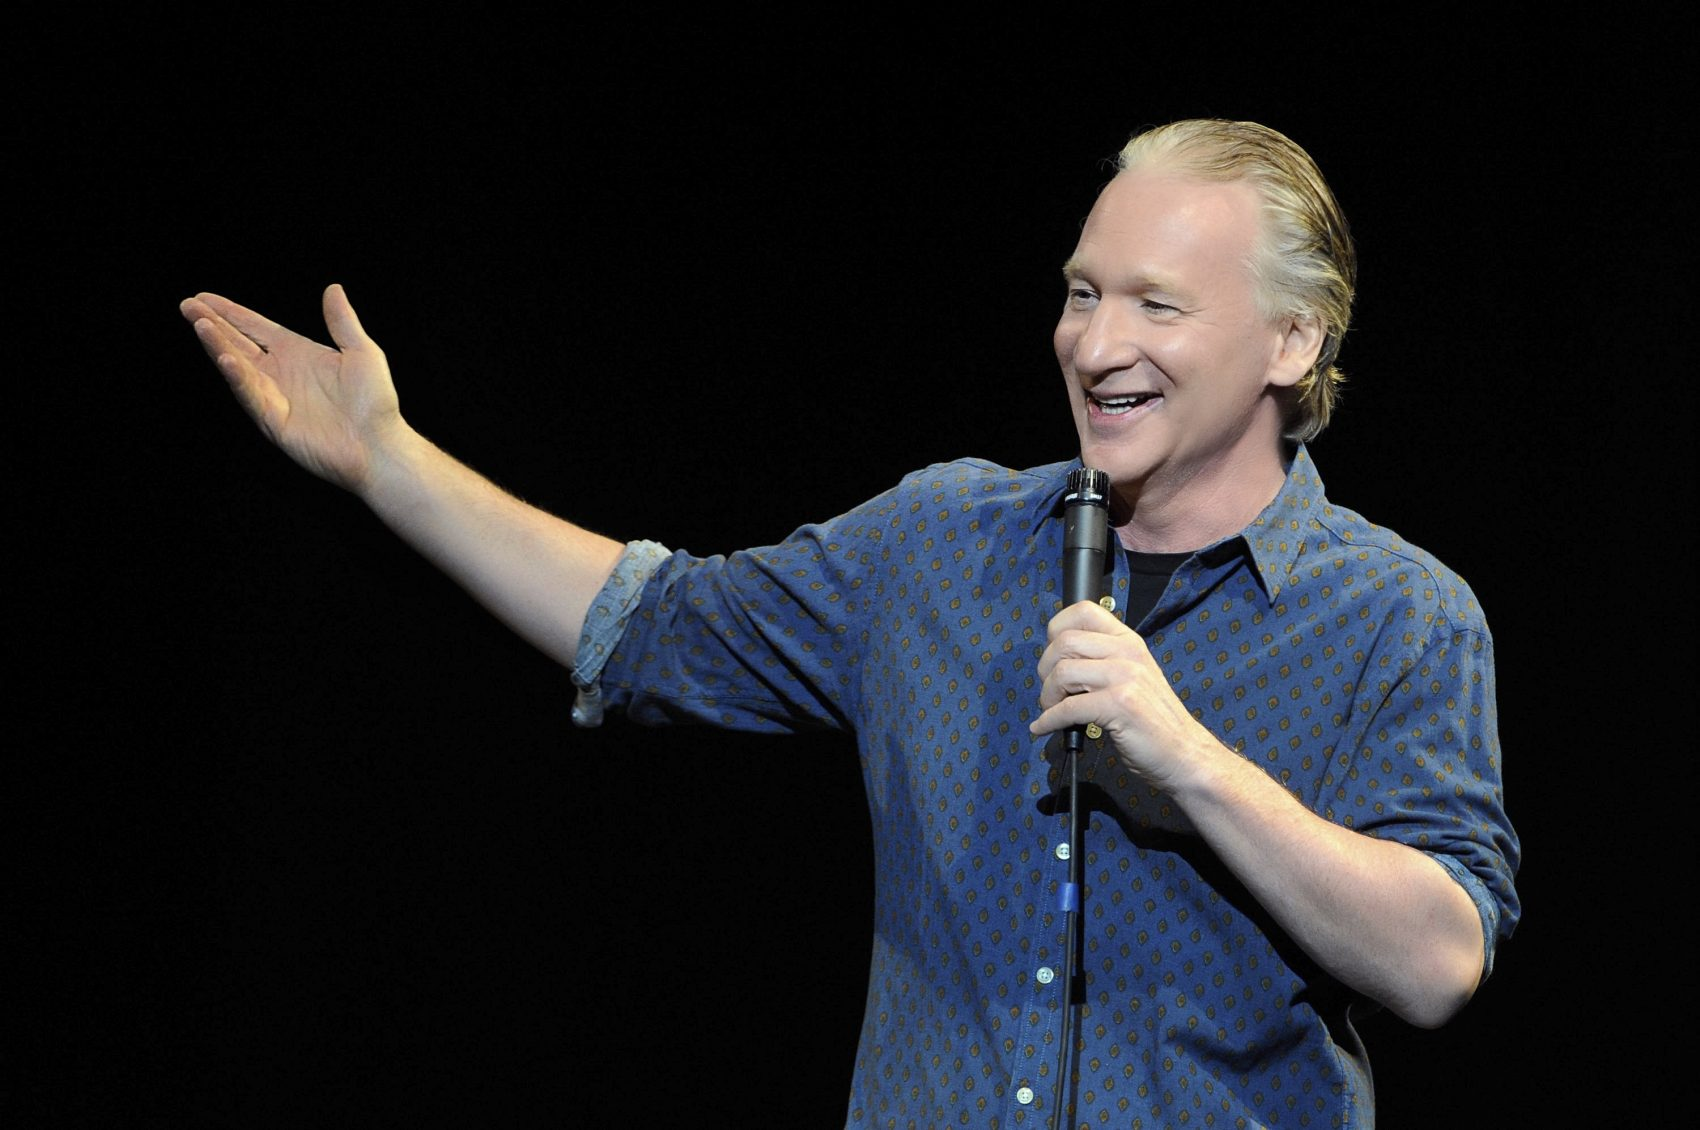 Bill Maher performs at the Palms Casino Resort in 2013 in Las Vegas. (Courtesy David Becker/WireImage)